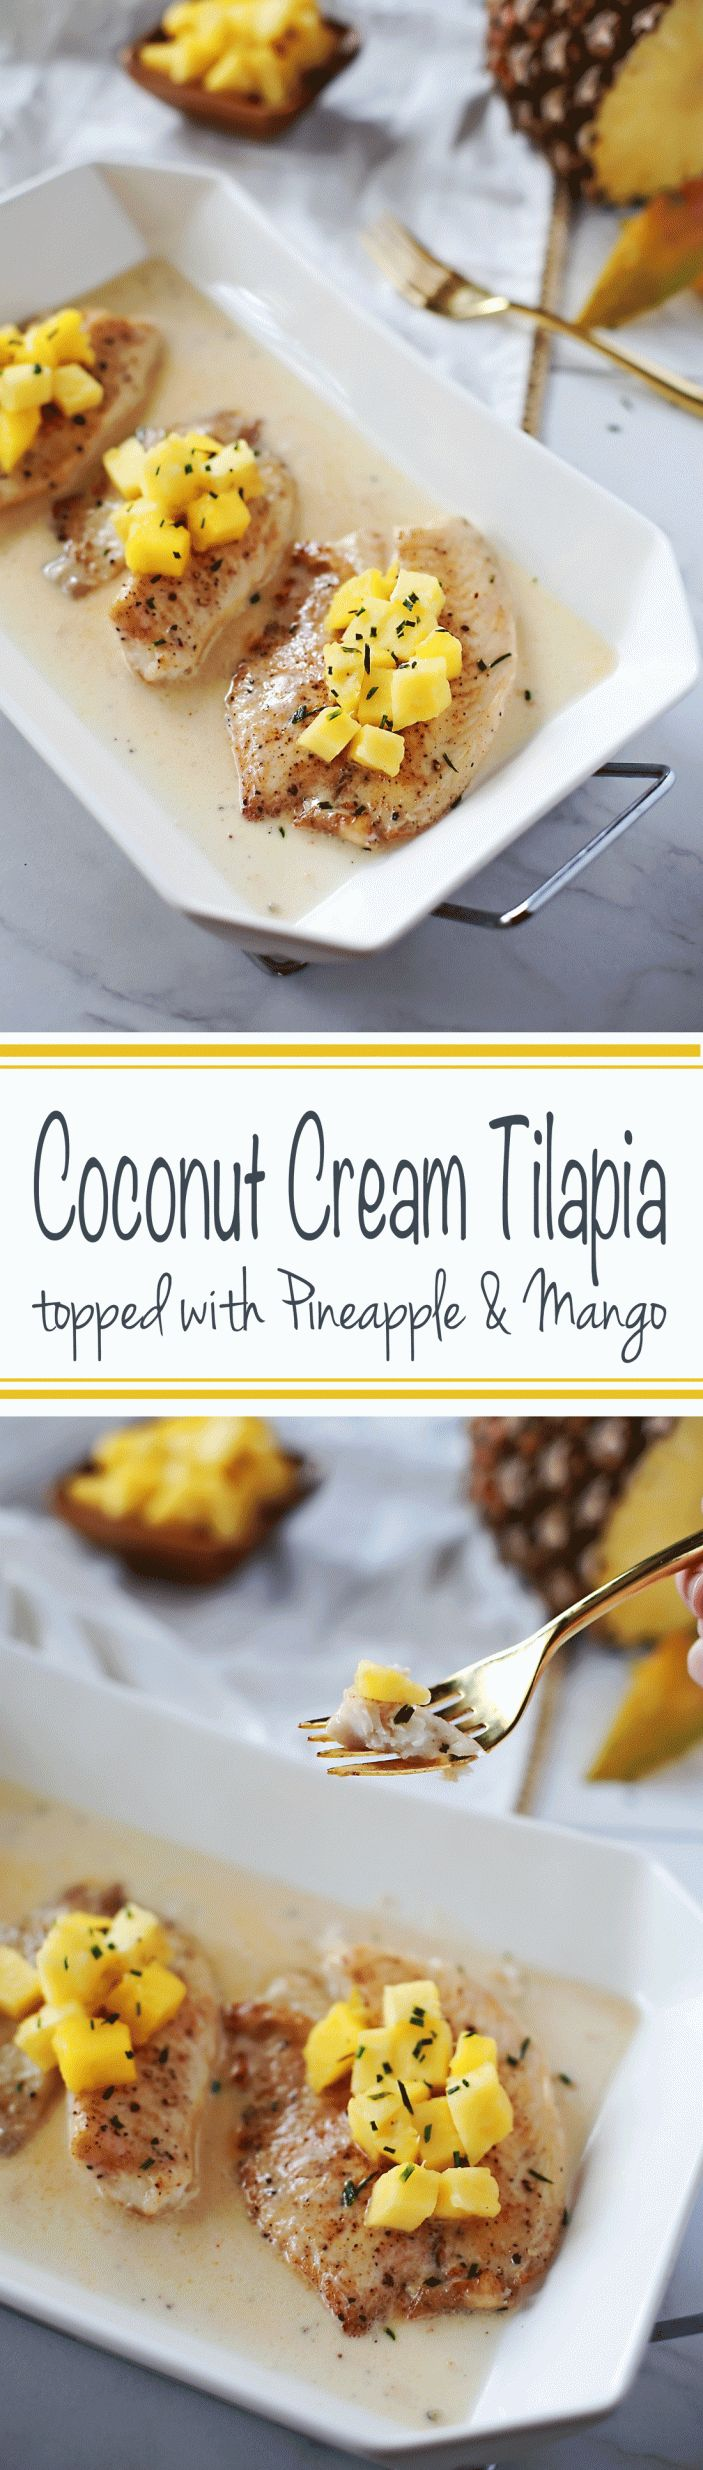 Coconut Cream Tilapia topped with Mango and Pineapple. Amazing Paleo and Whole 30 friendly recipe by Flirting with Flavor!